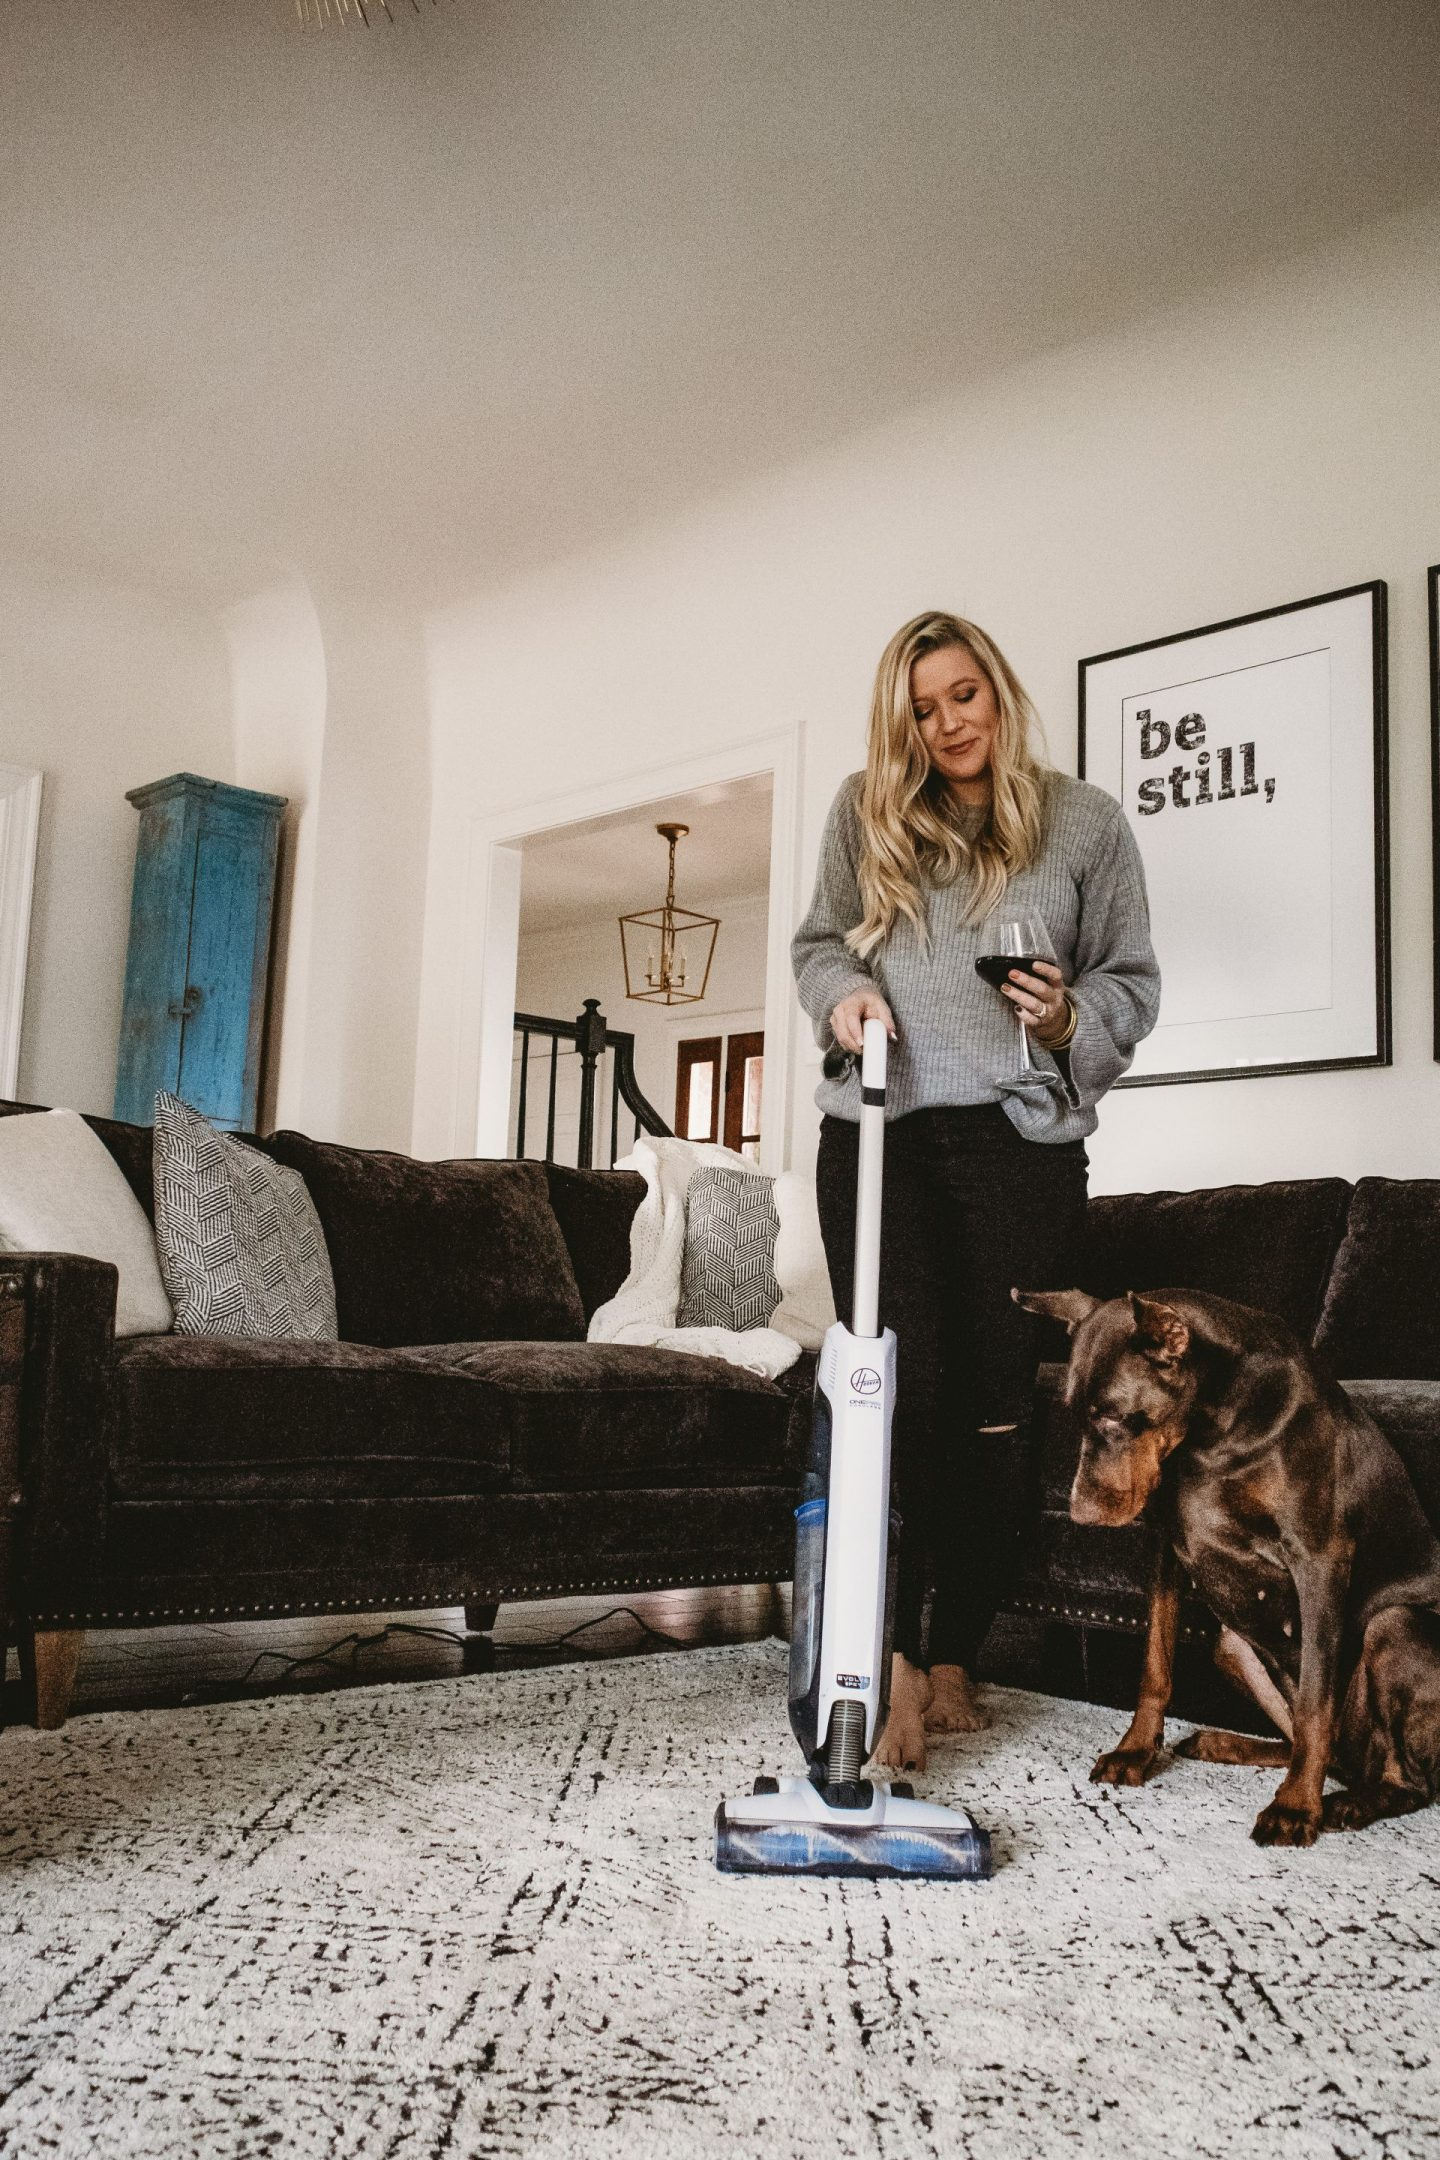 The Hoover ONEPWR Evolve Pet Cordless Vacuum